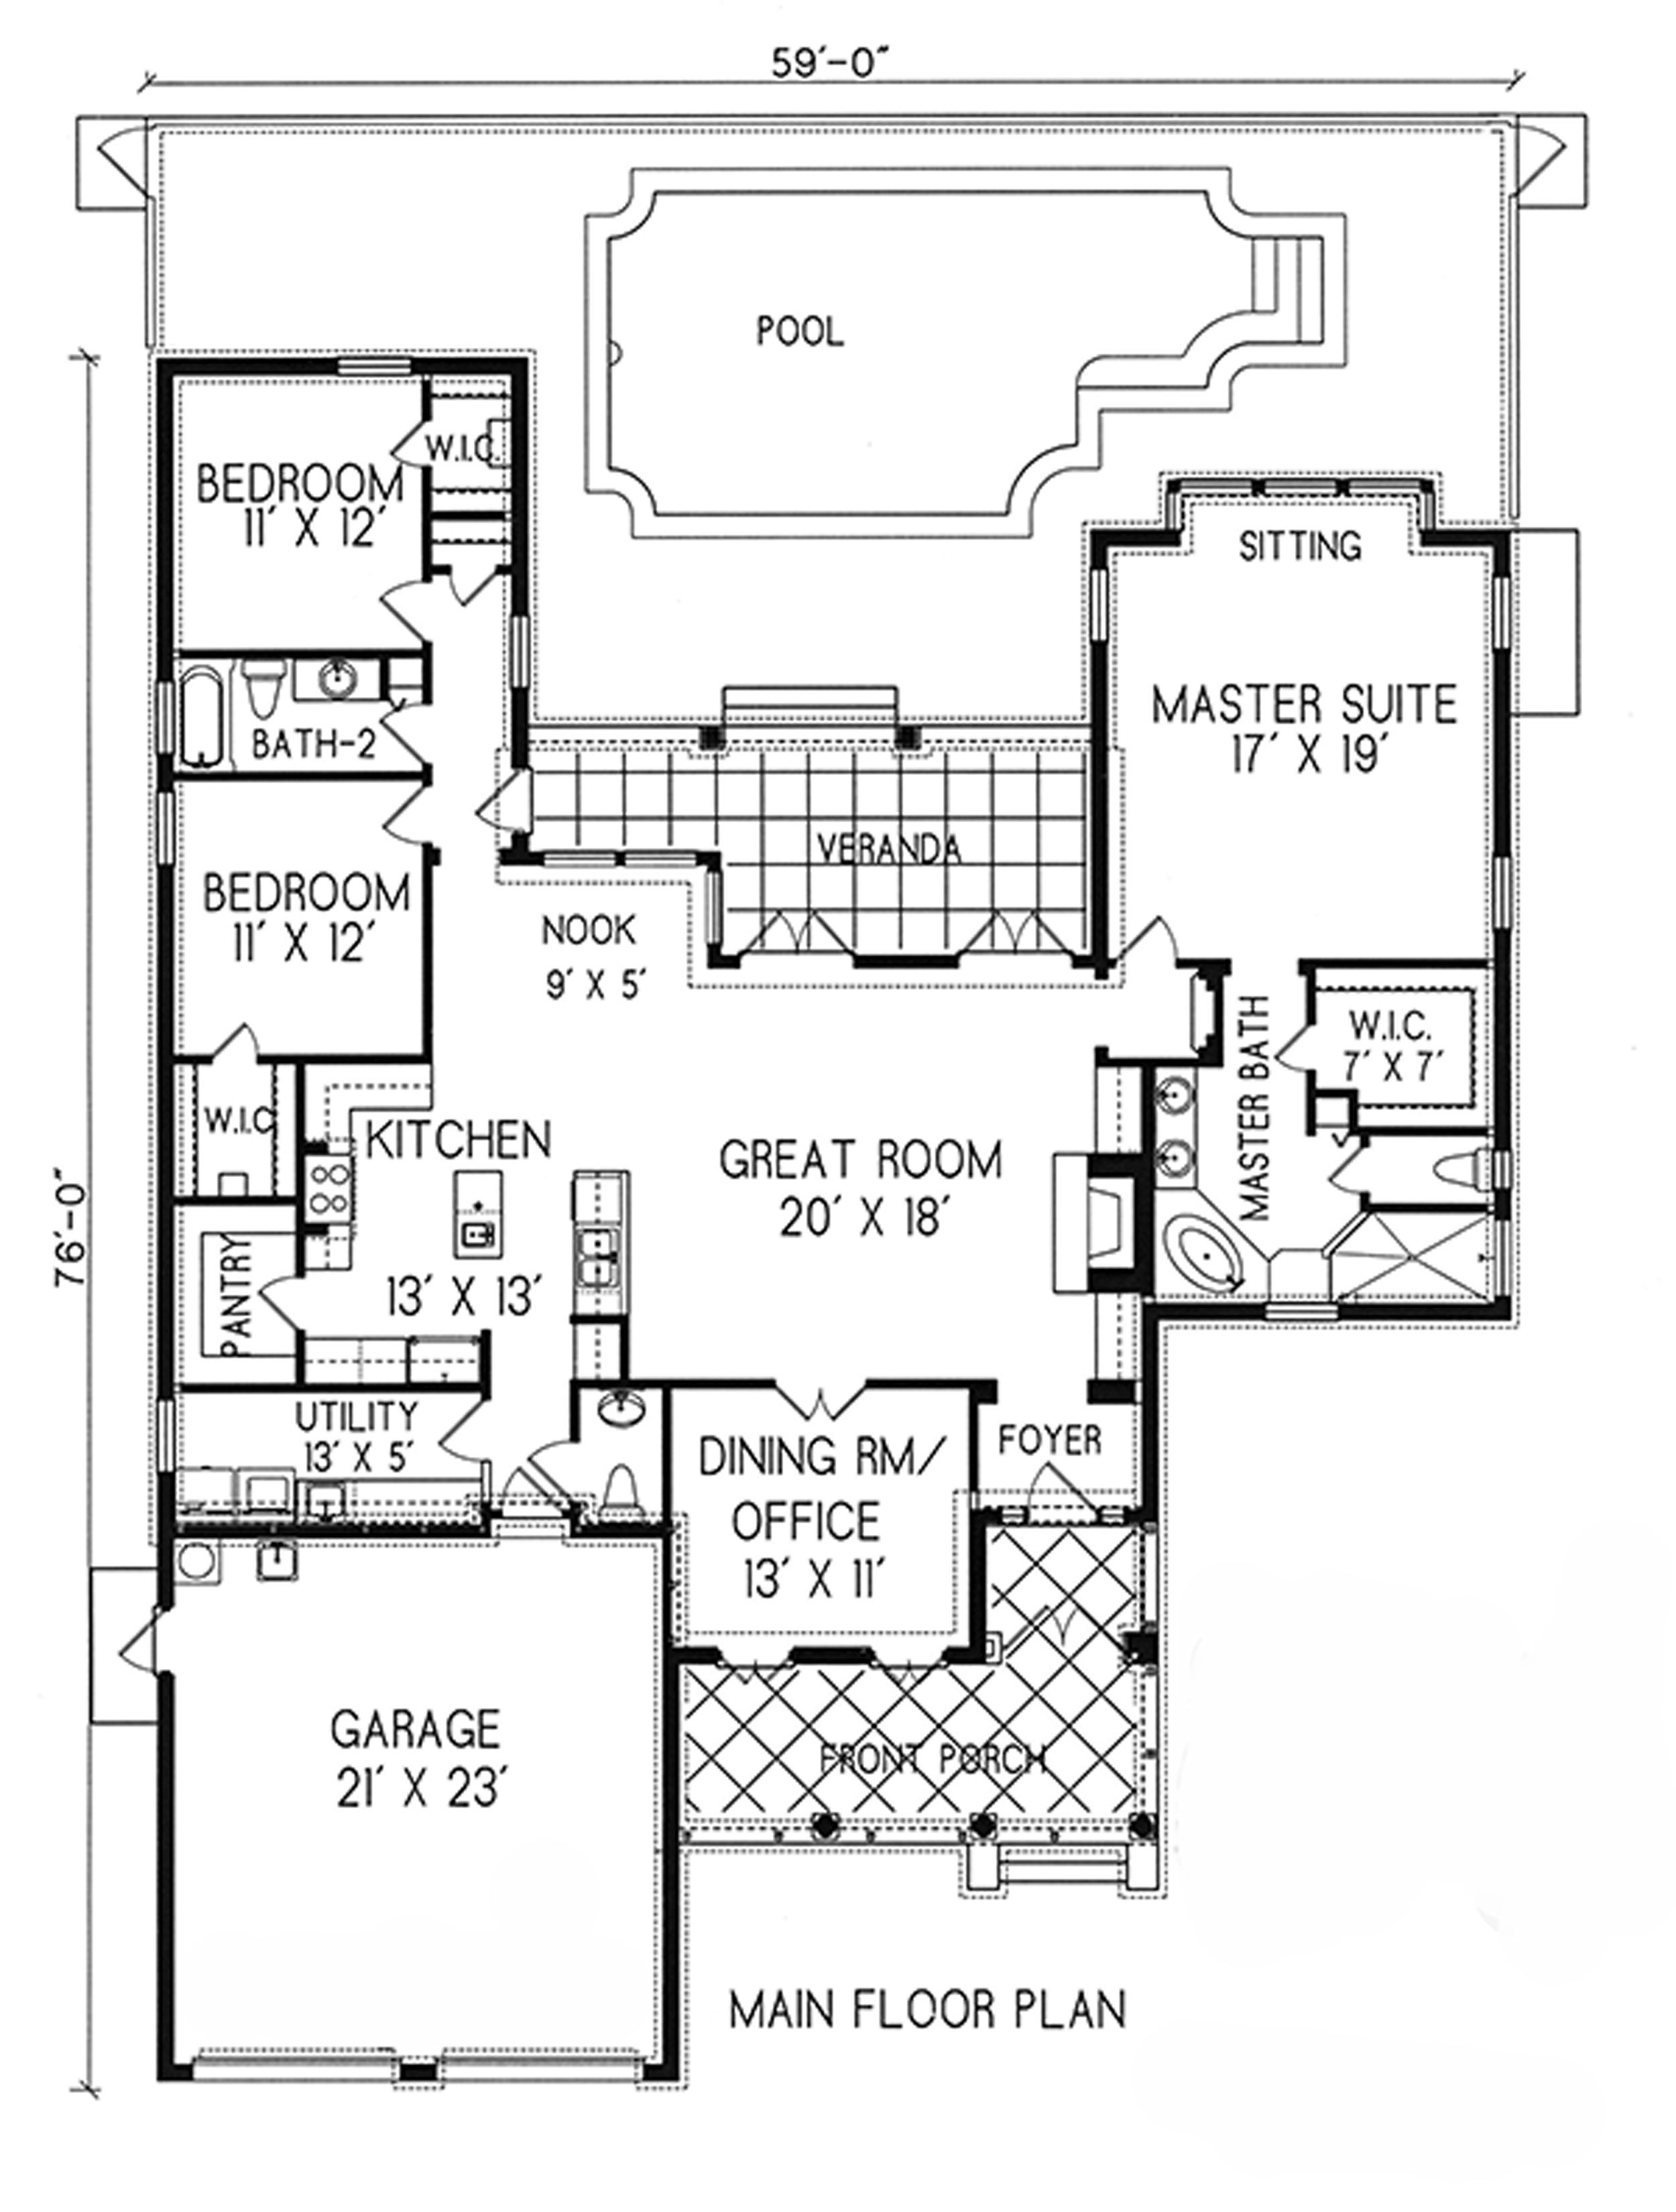 plan 1 1093 spanish style home with a living sf of 2226